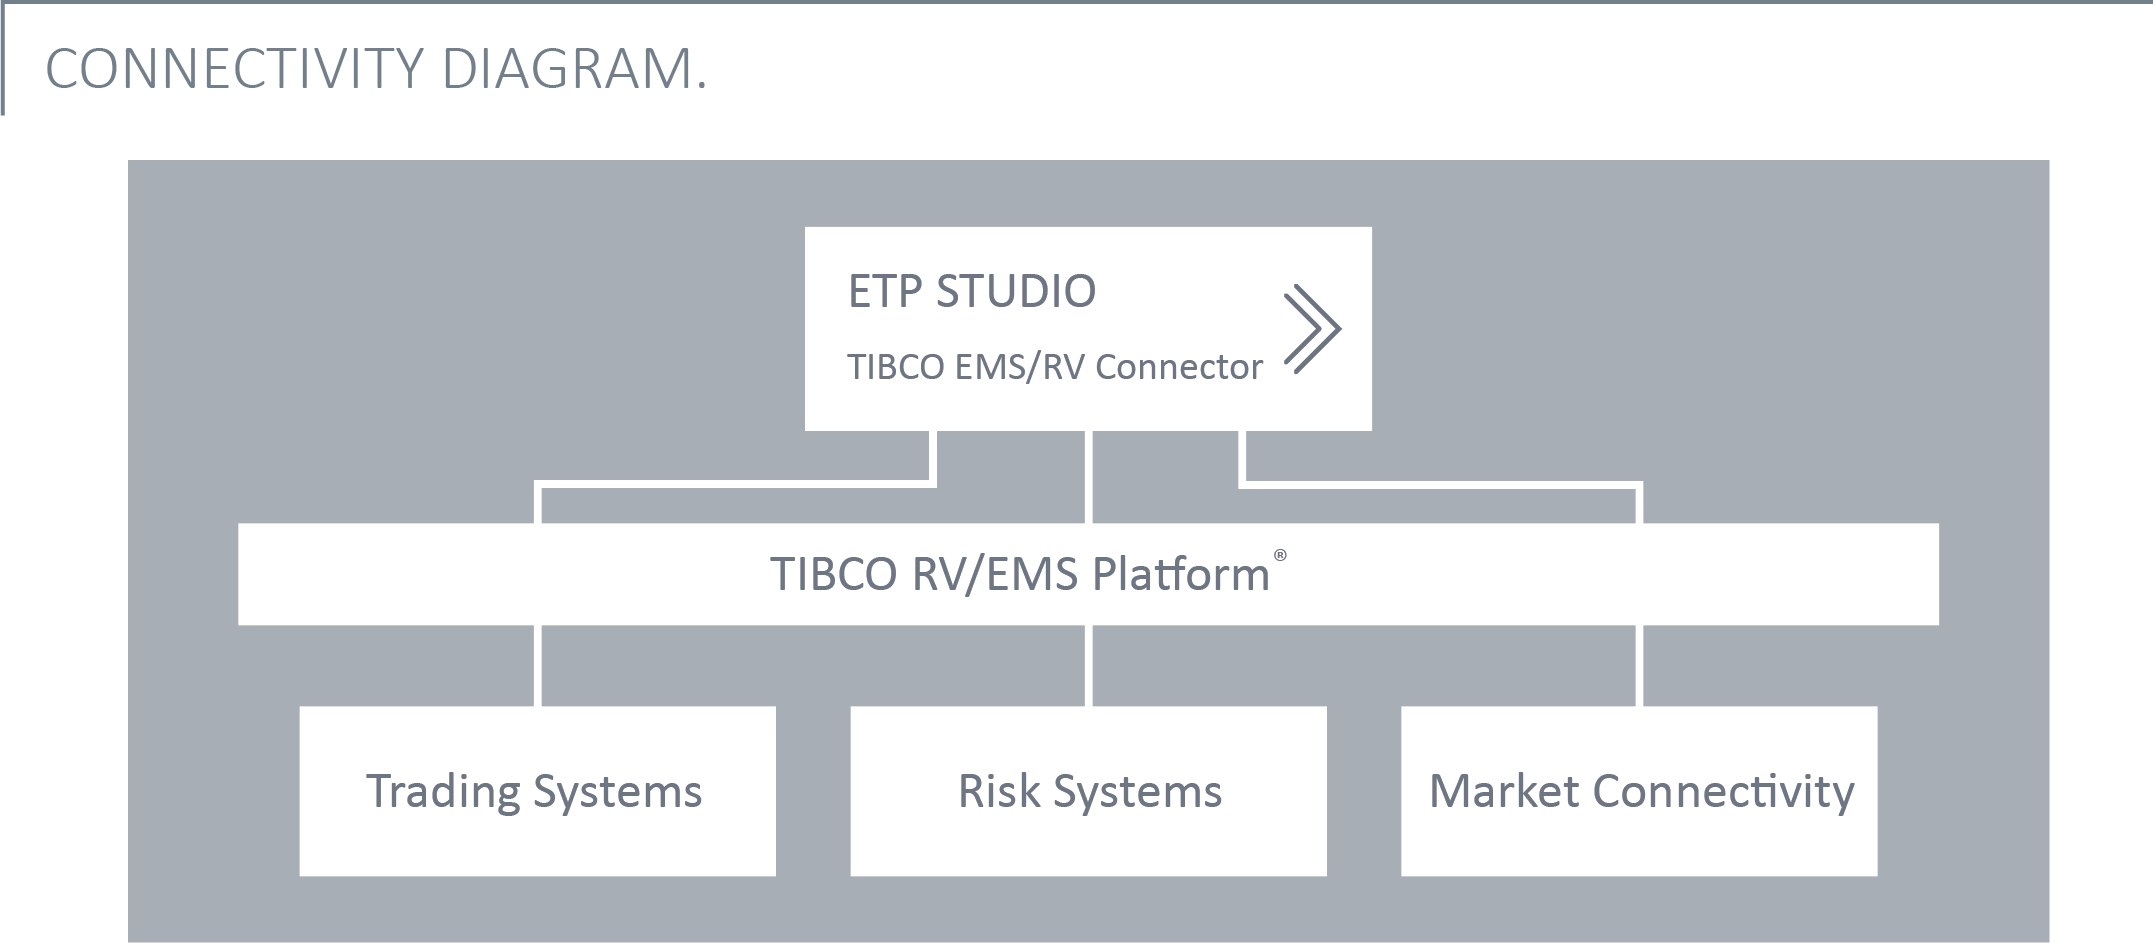 TIBCO Rendezvous/EMS - Connectivity Diagram